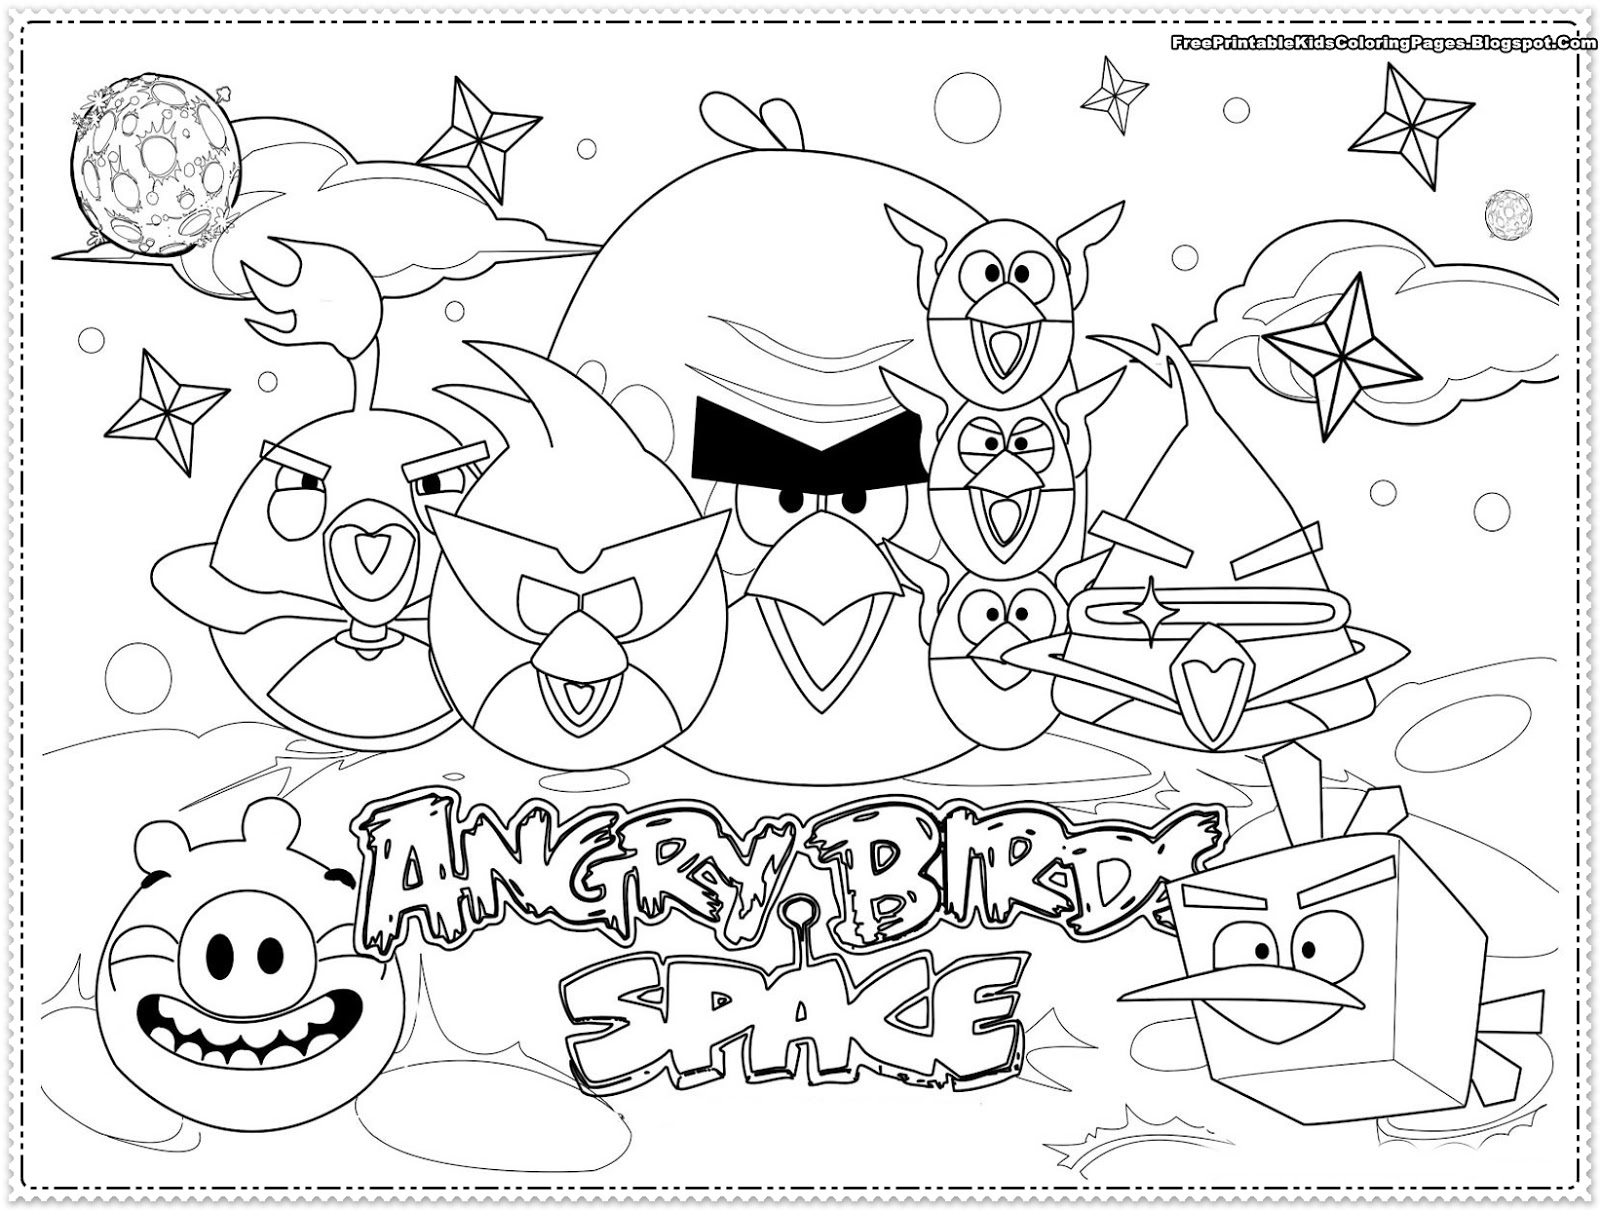 angry birds 2 coloring pages print angry birds movie 2 for kids coloring pages bird birds angry 2 pages coloring